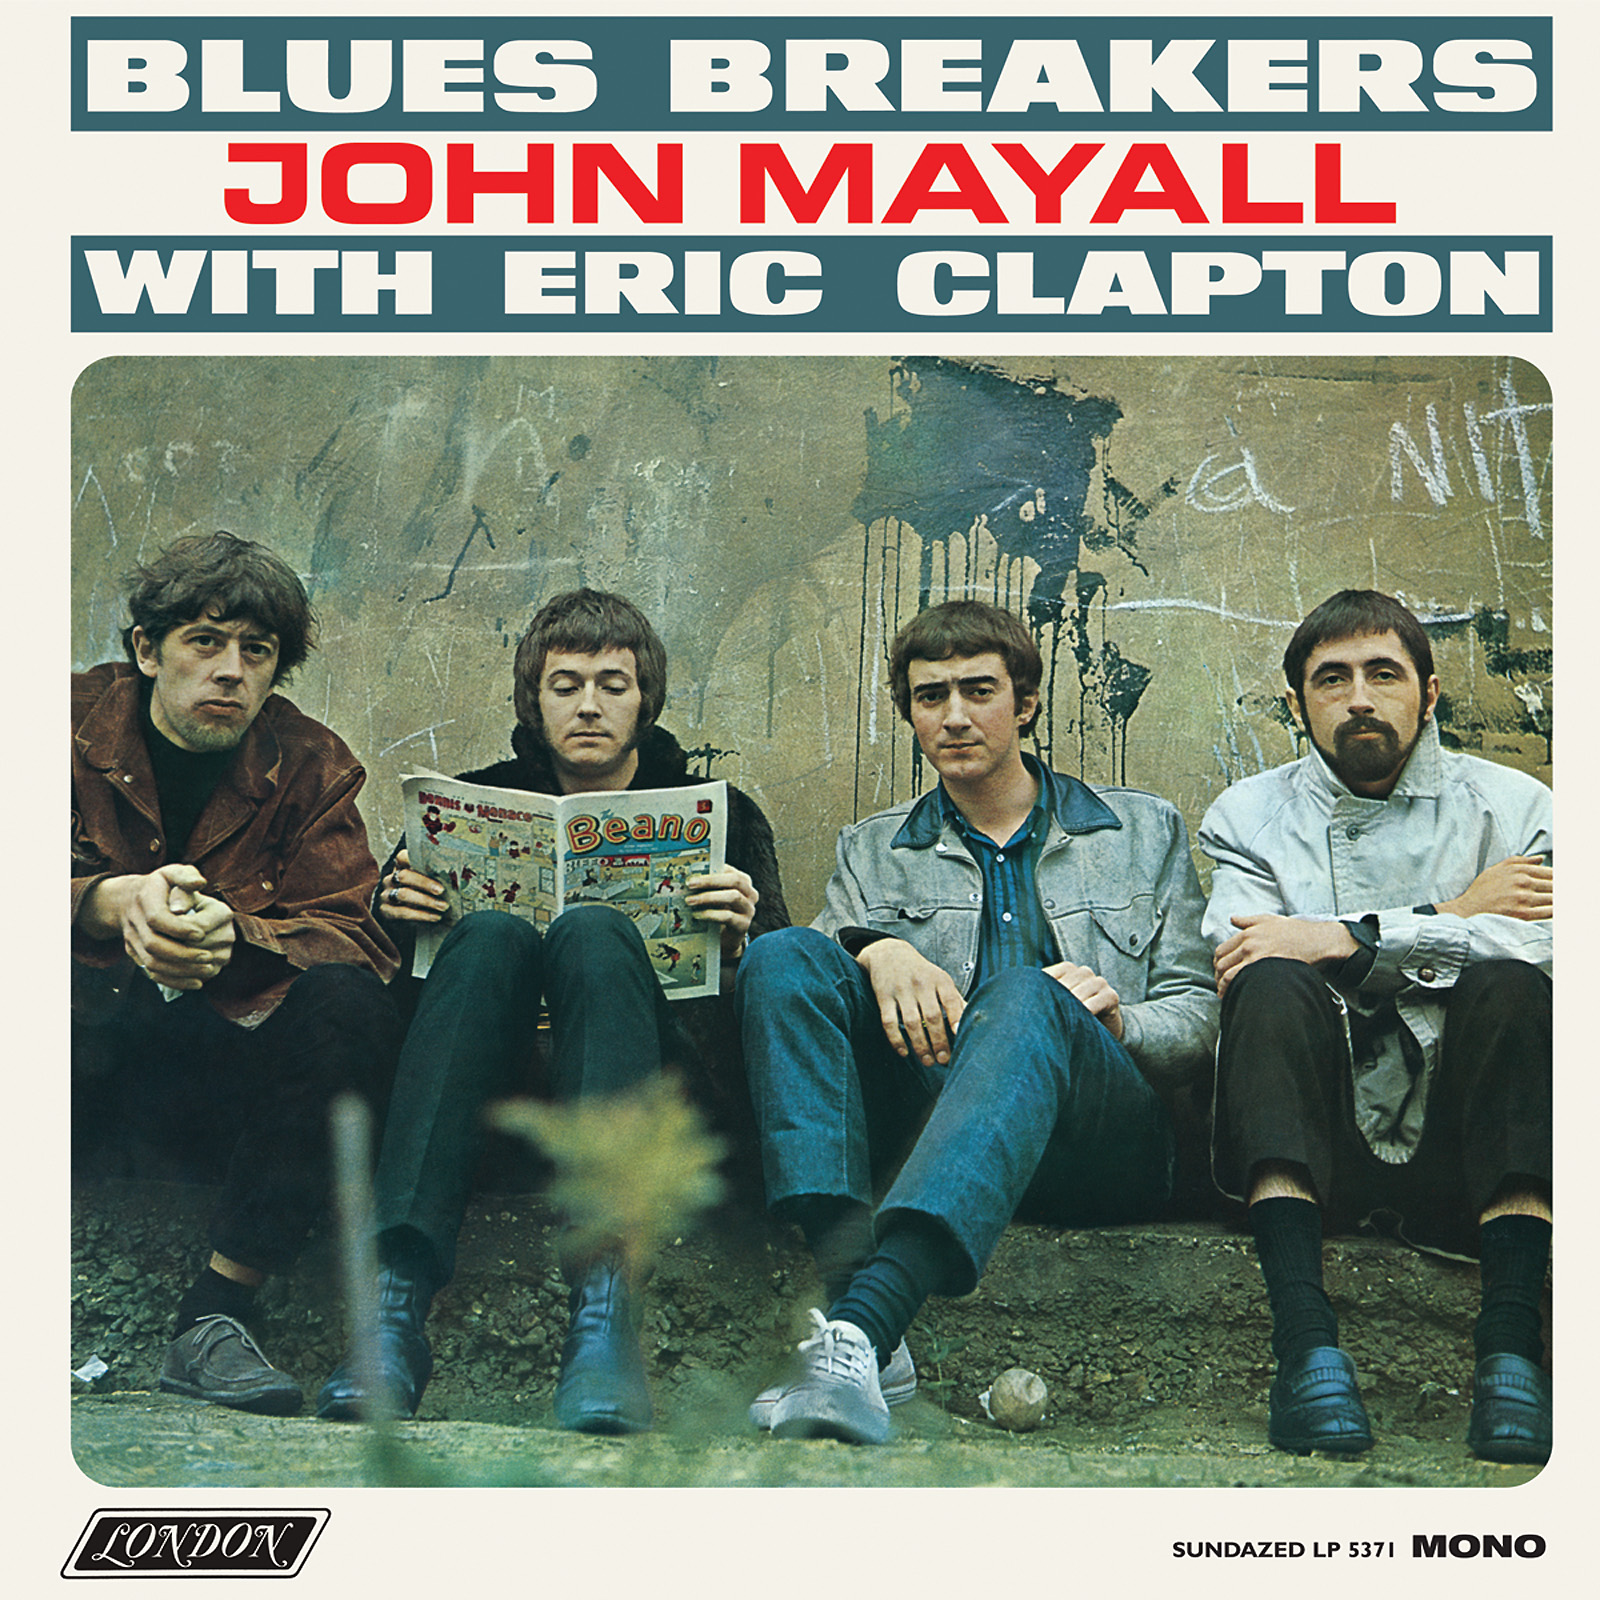 Mayall, John and the Blues Breakers - Blues Breakers with Eric Clapton MONO Edition LP